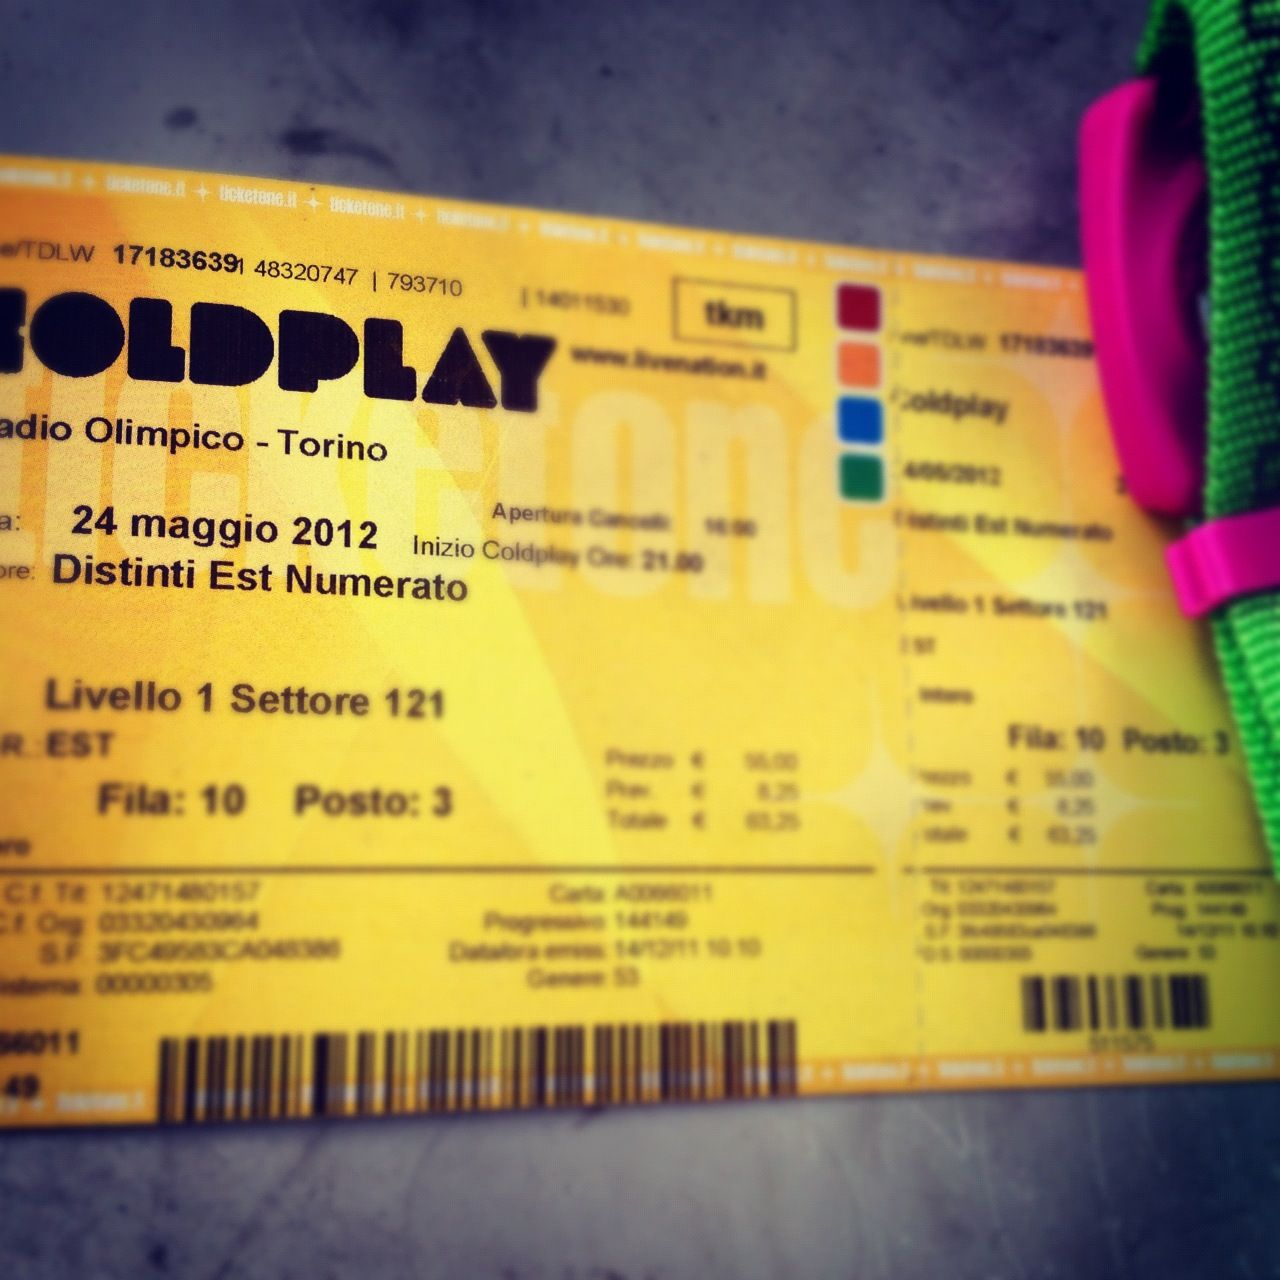 Coldplay Concert in Turin: just amazing *-*